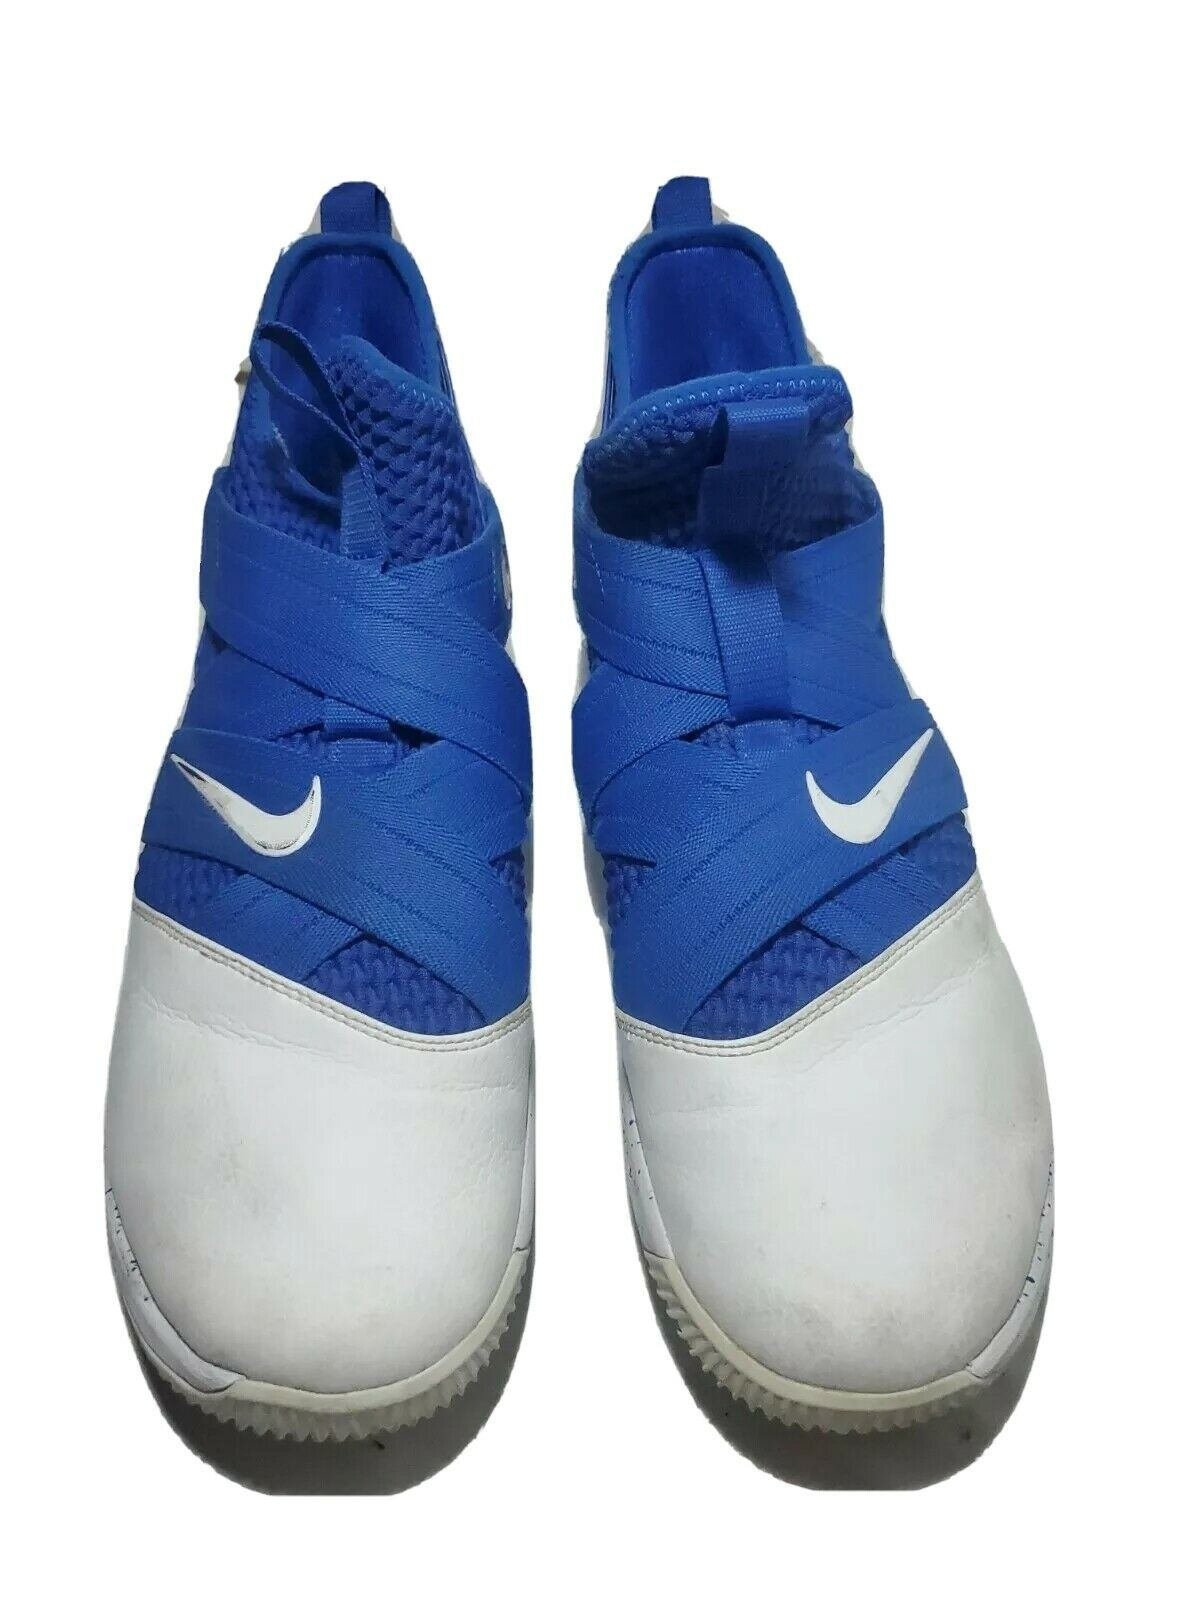 Nike Lebron Soldier XII White and Blue Basketball Shoes Size 13 AT3872-111 on eBay thumbnail